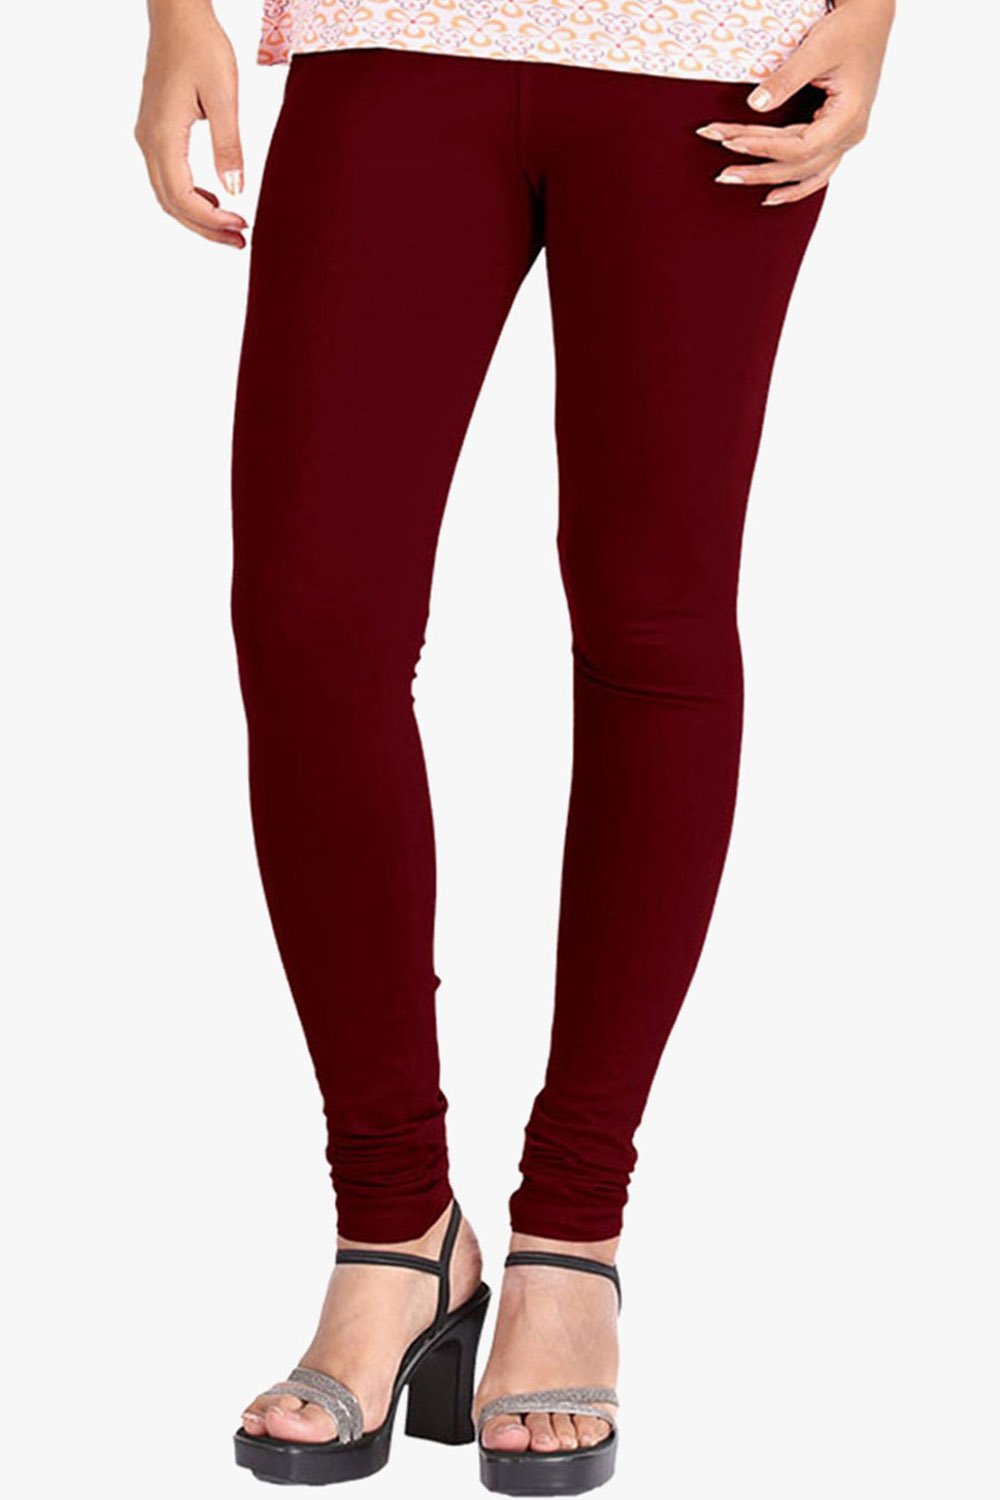 Maroon Cotton Lycra Leggings